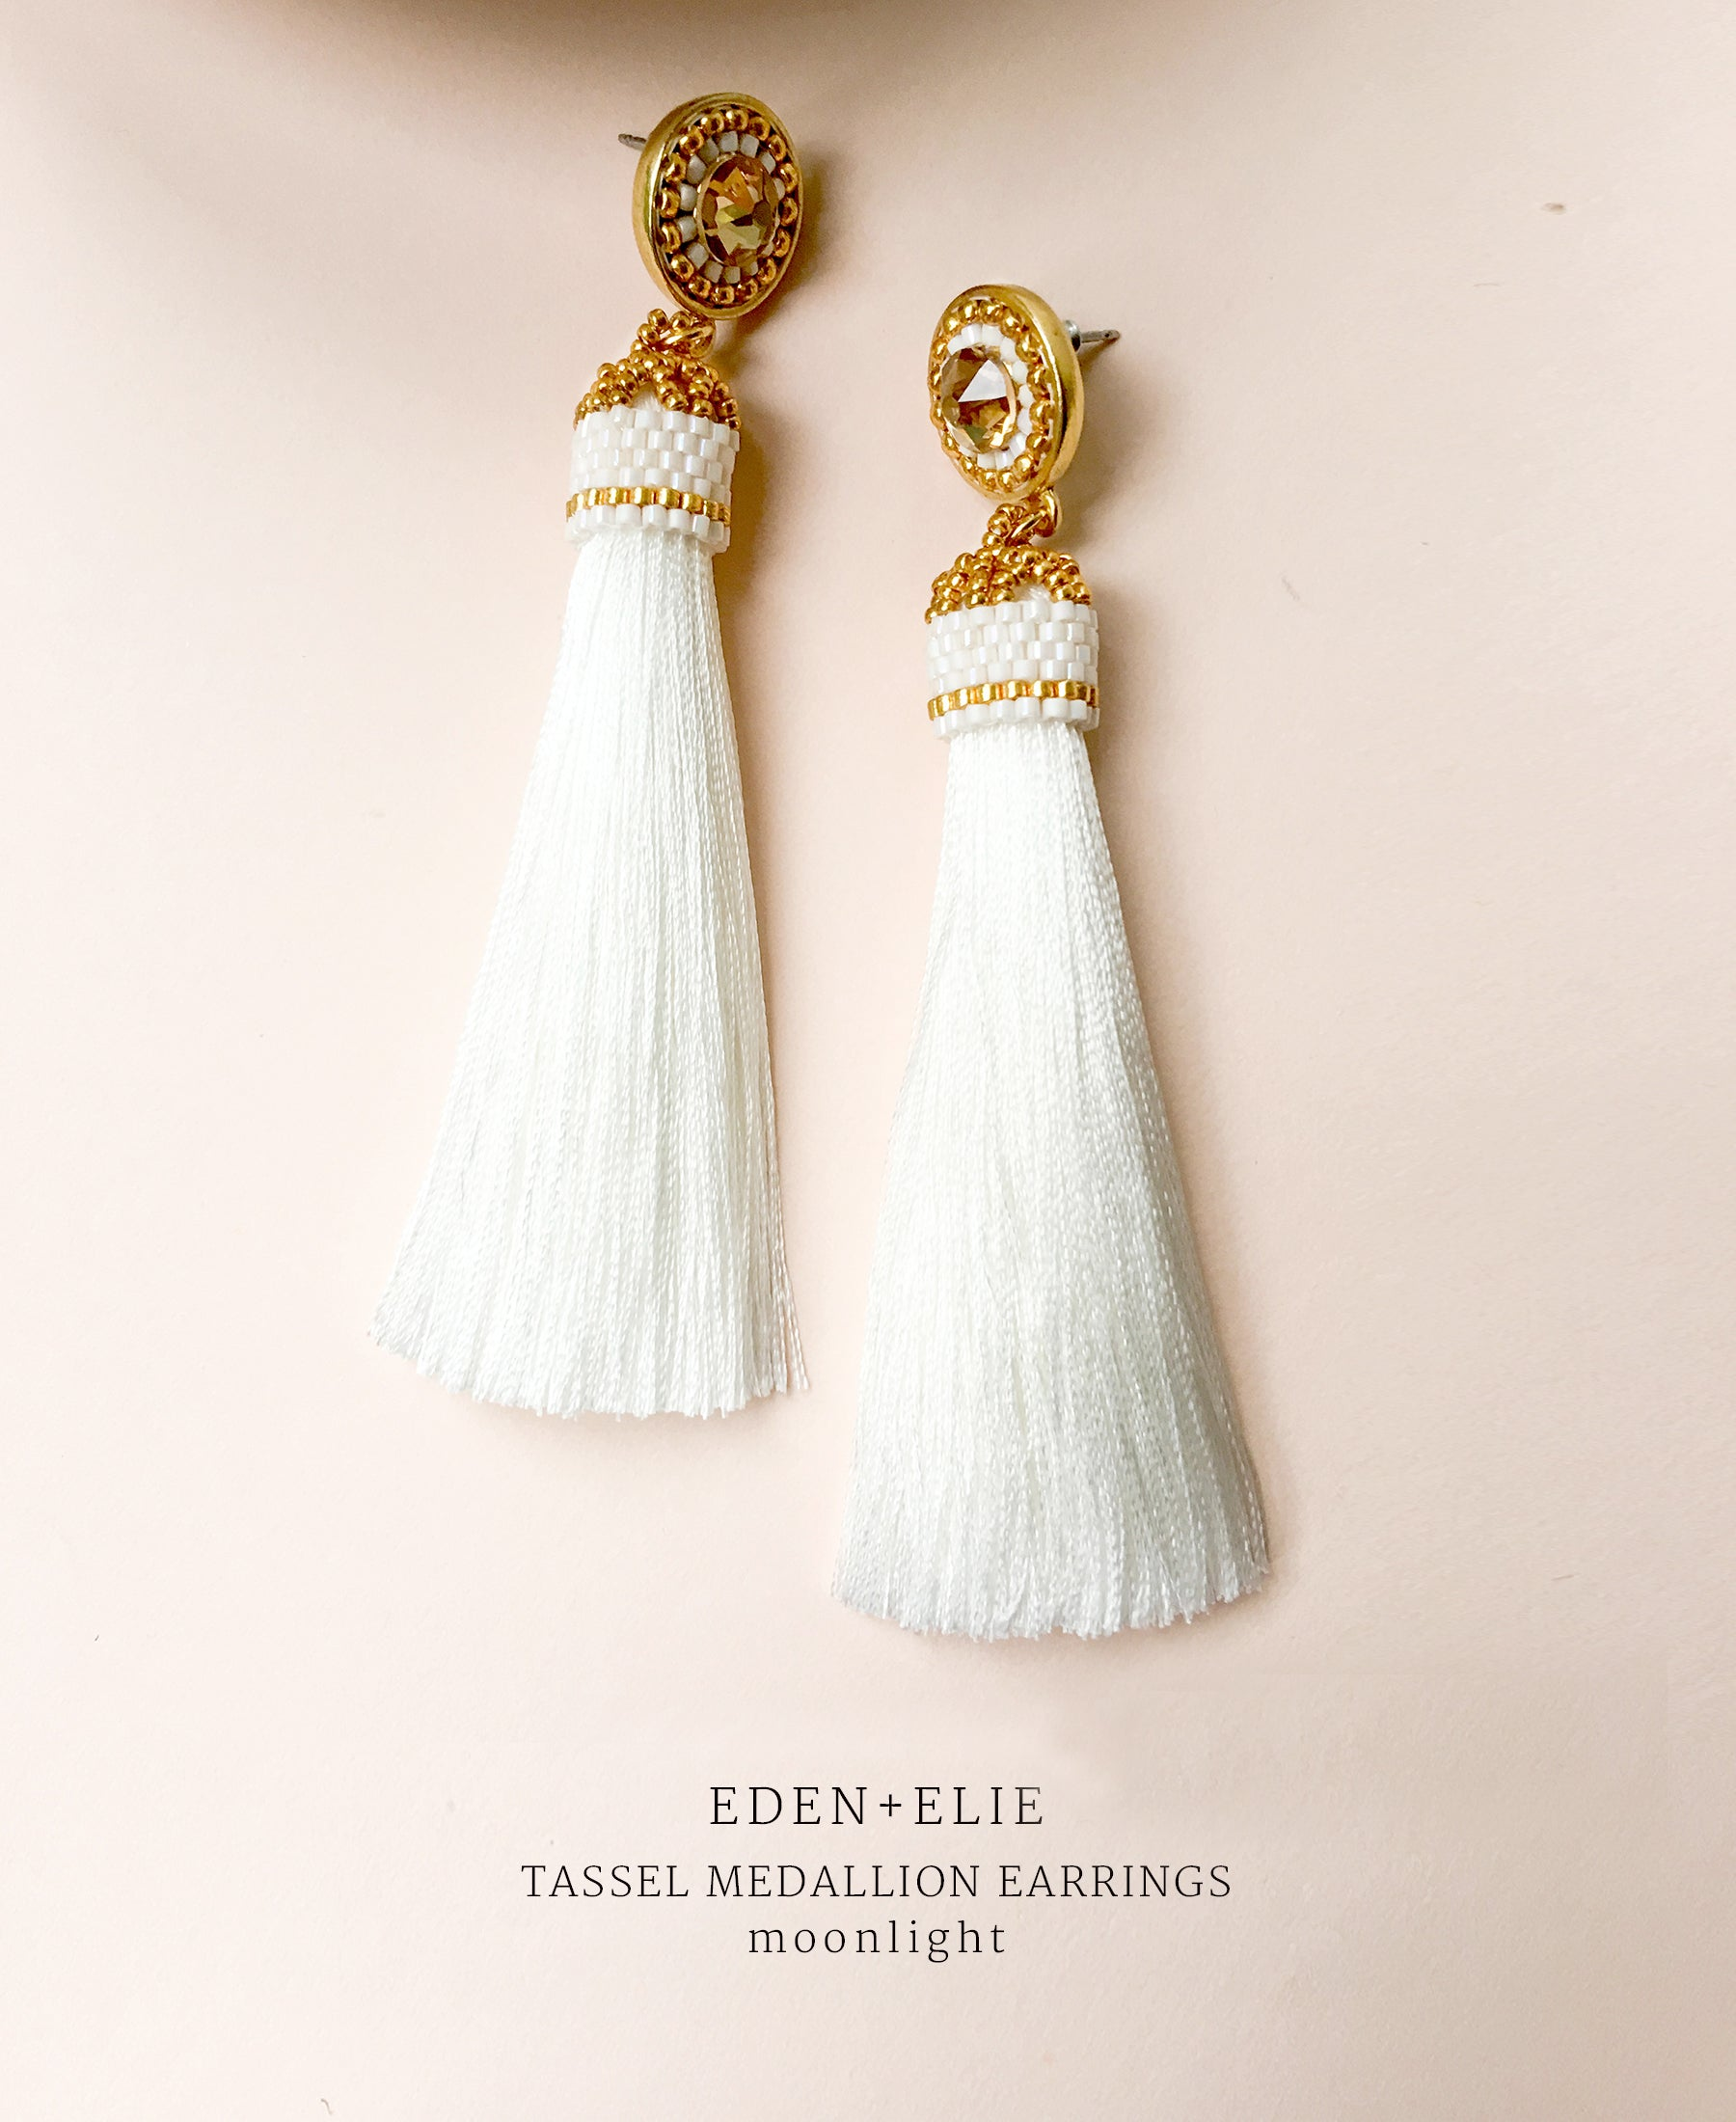 EDEN + ELIE silk tassel statement earrings - moonlight